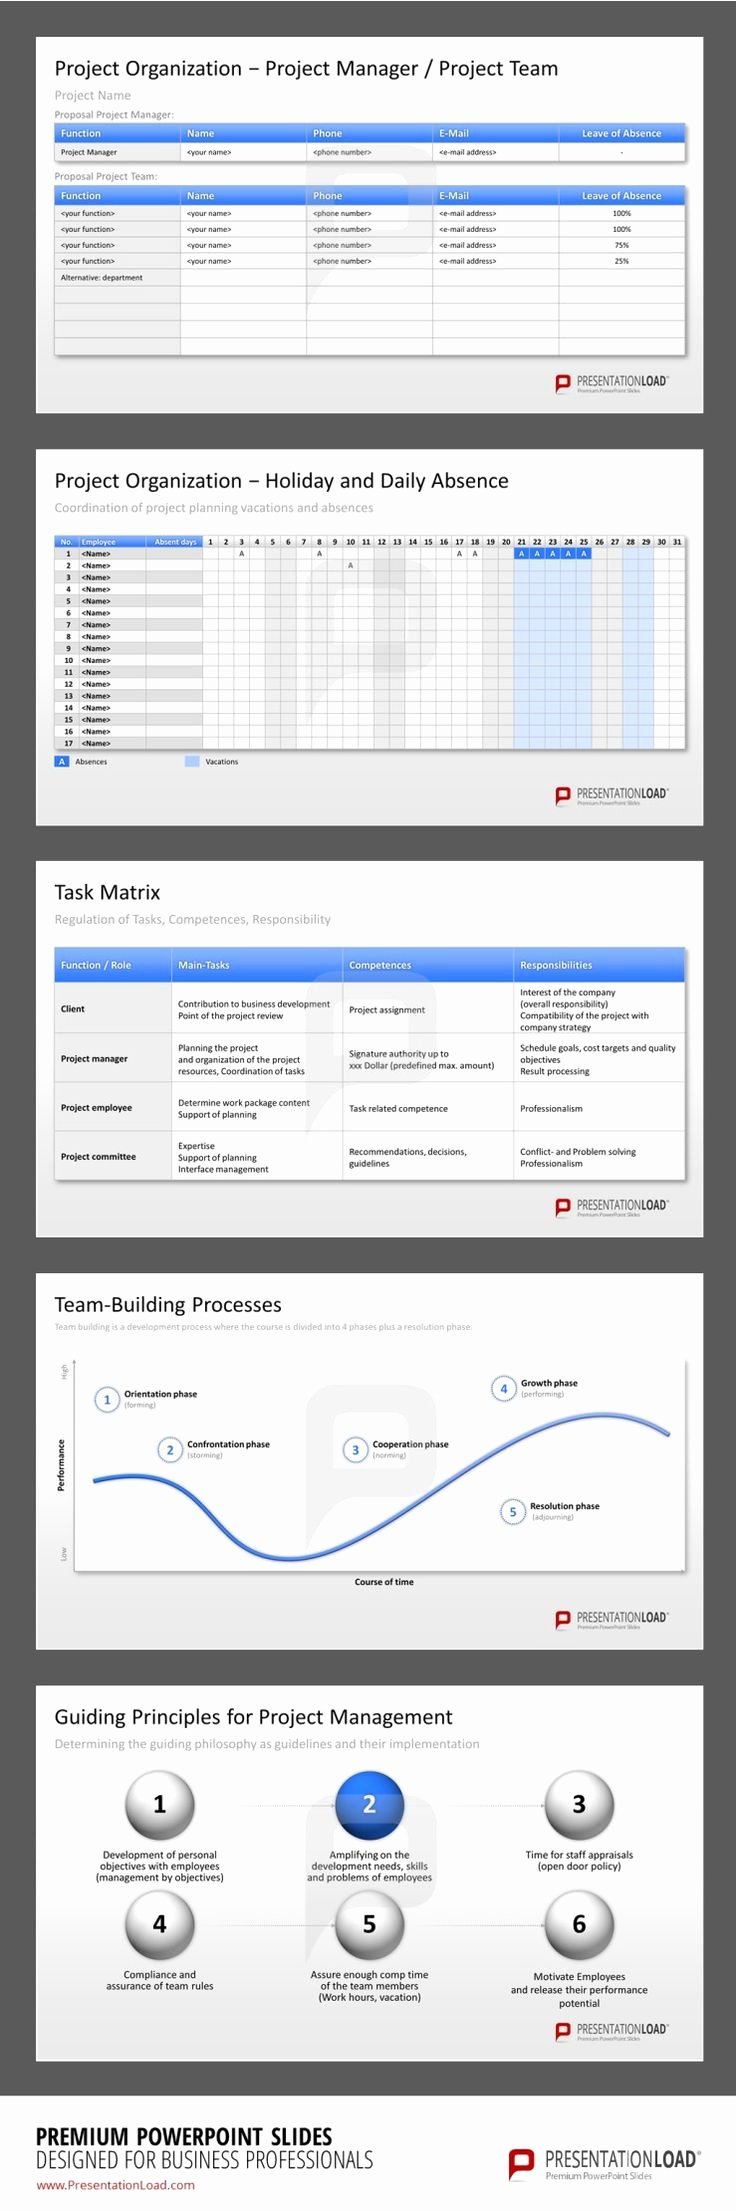 Project Management Powerpoint Template Elegant Project Management Powerpoint Templates 10 Handpicked